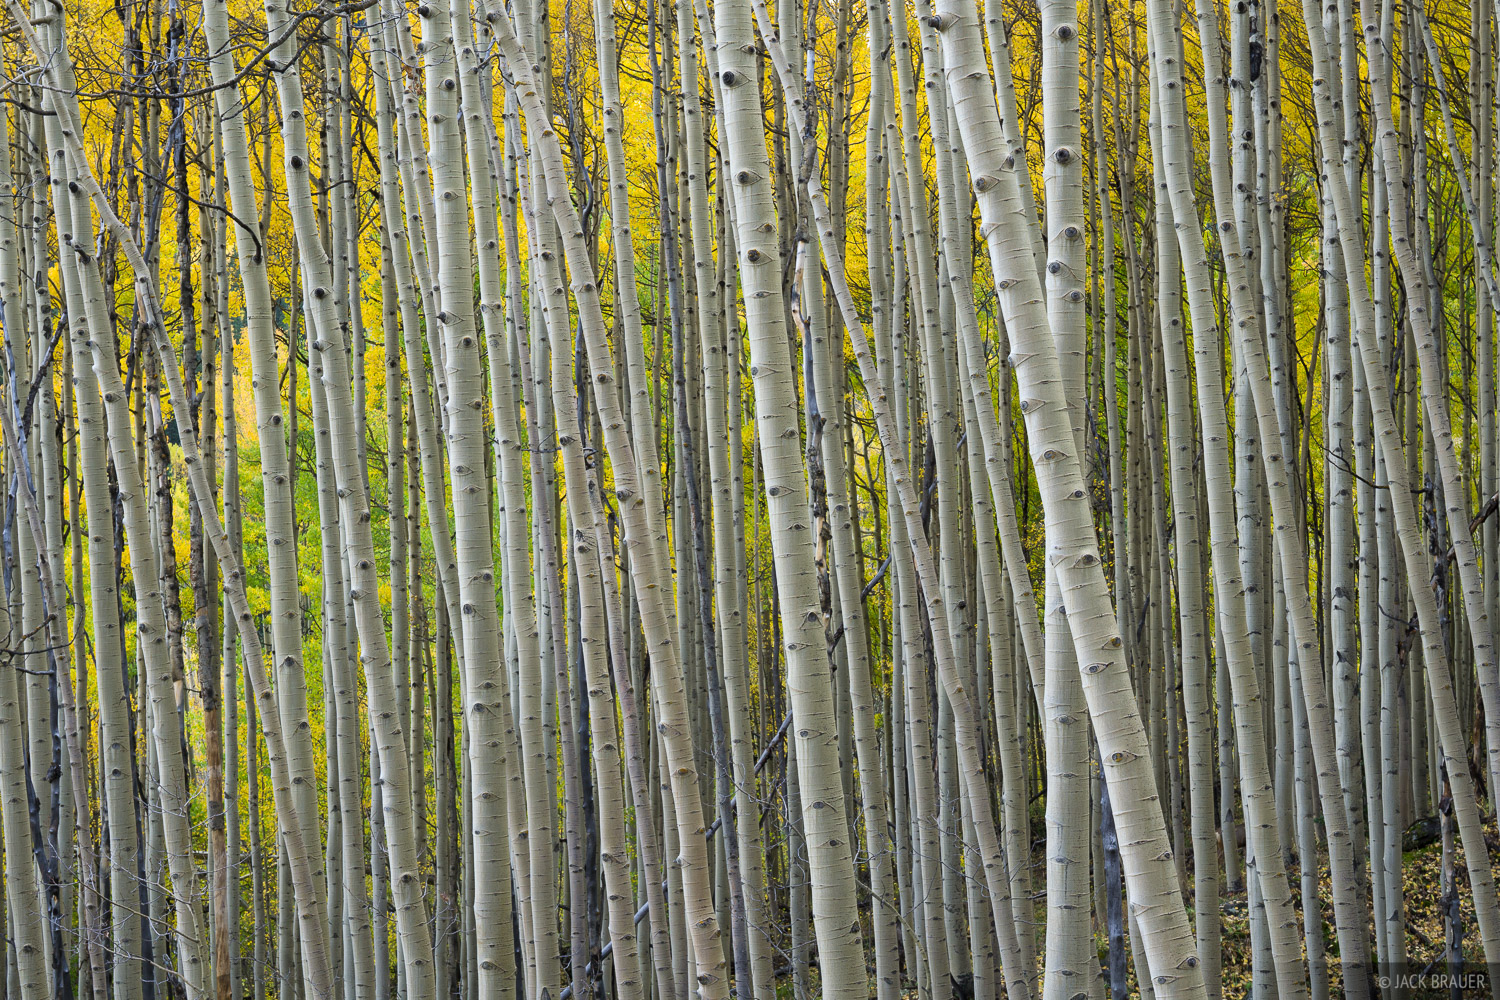 Colorado, San Juan Mountains, aspens, September, autumn, abstract, forest, 2014